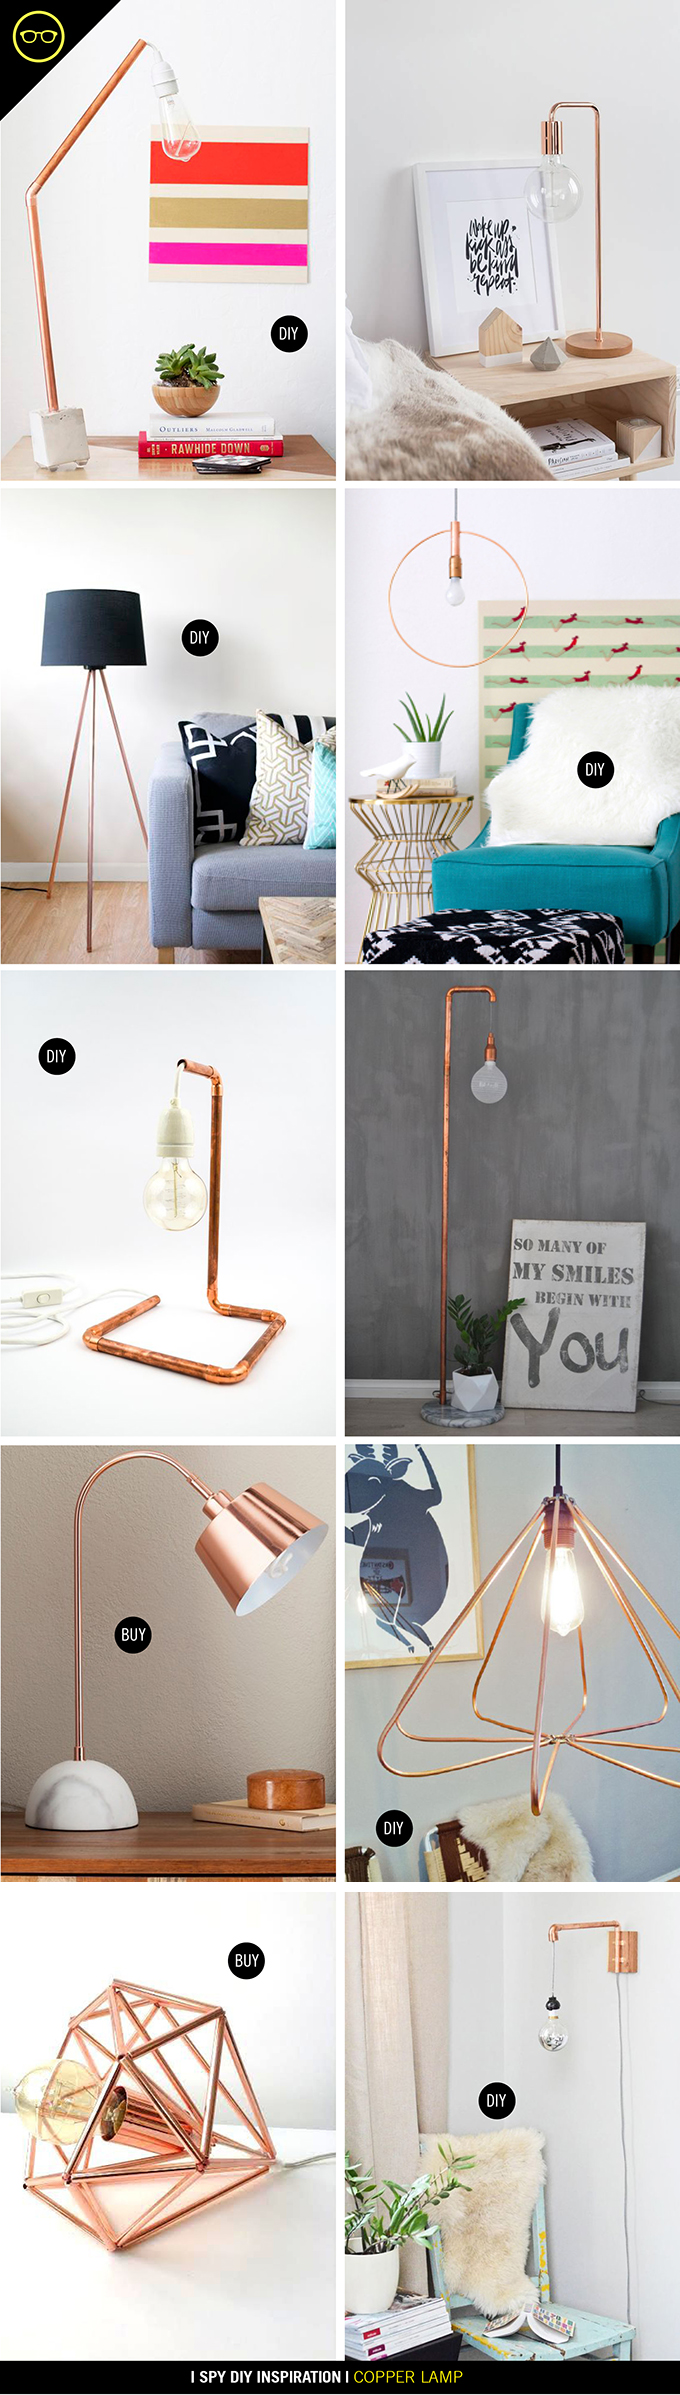 Ispydiy_COPPERLAMP 2